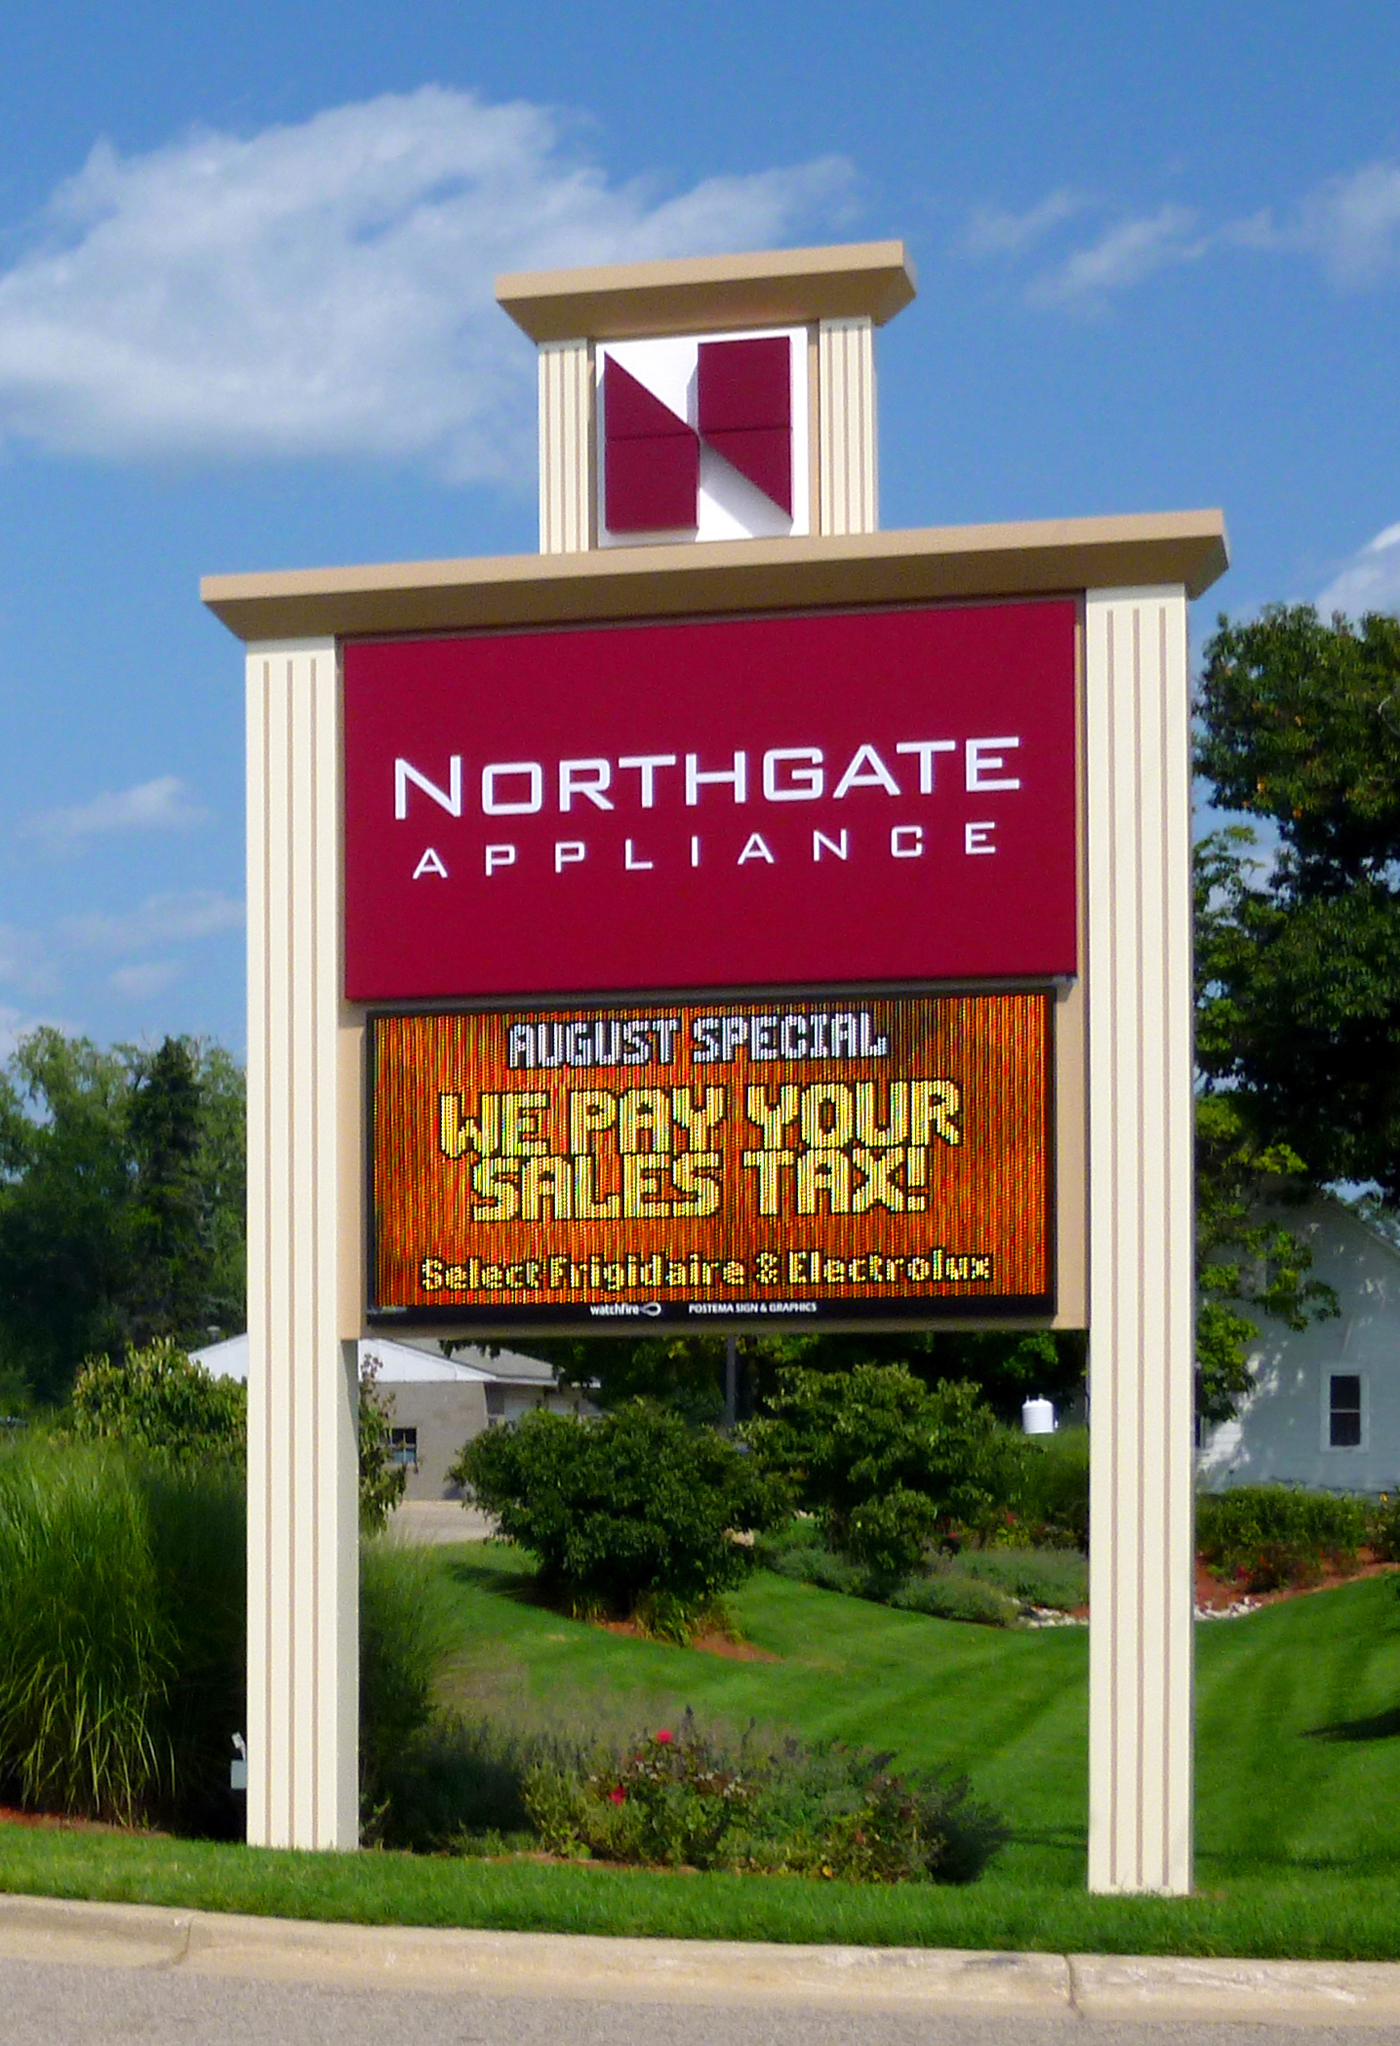 Northgate Appliance.jpg